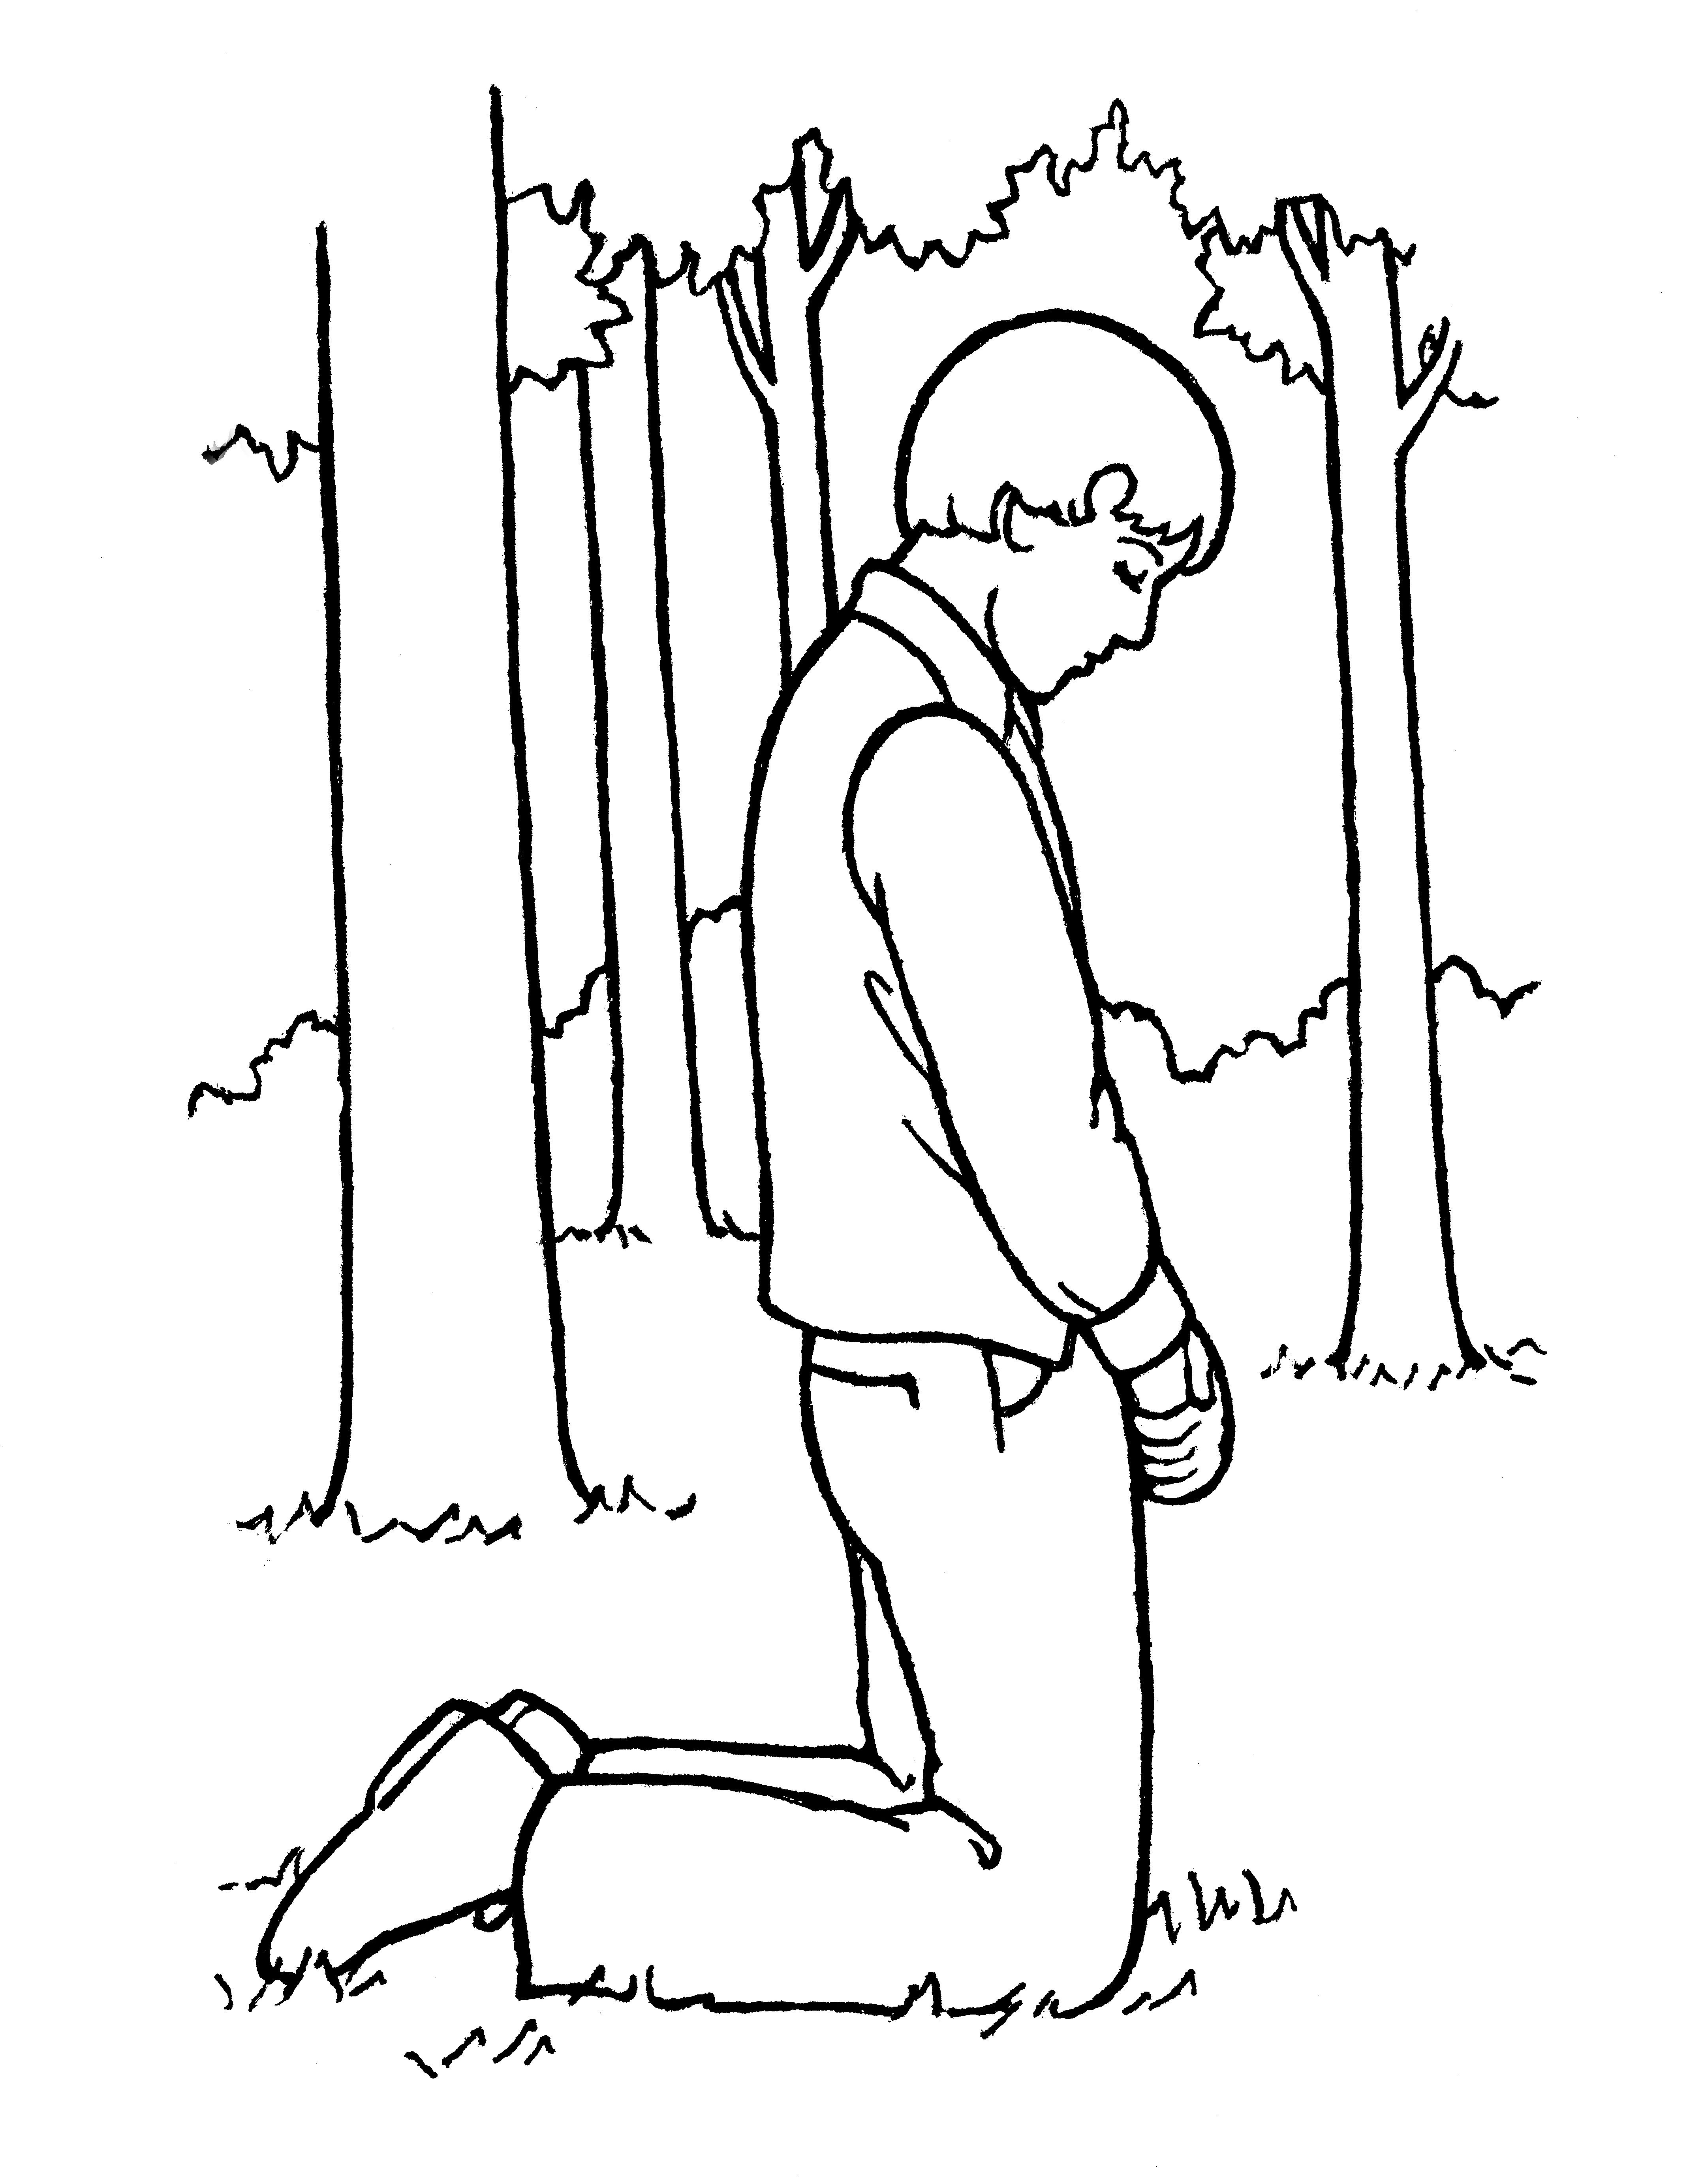 An illustration of Joseph Smith praying in the Sacred Grove prior to the First Vision, from the nursery manual Behold Your Little Ones (2008), page 91.